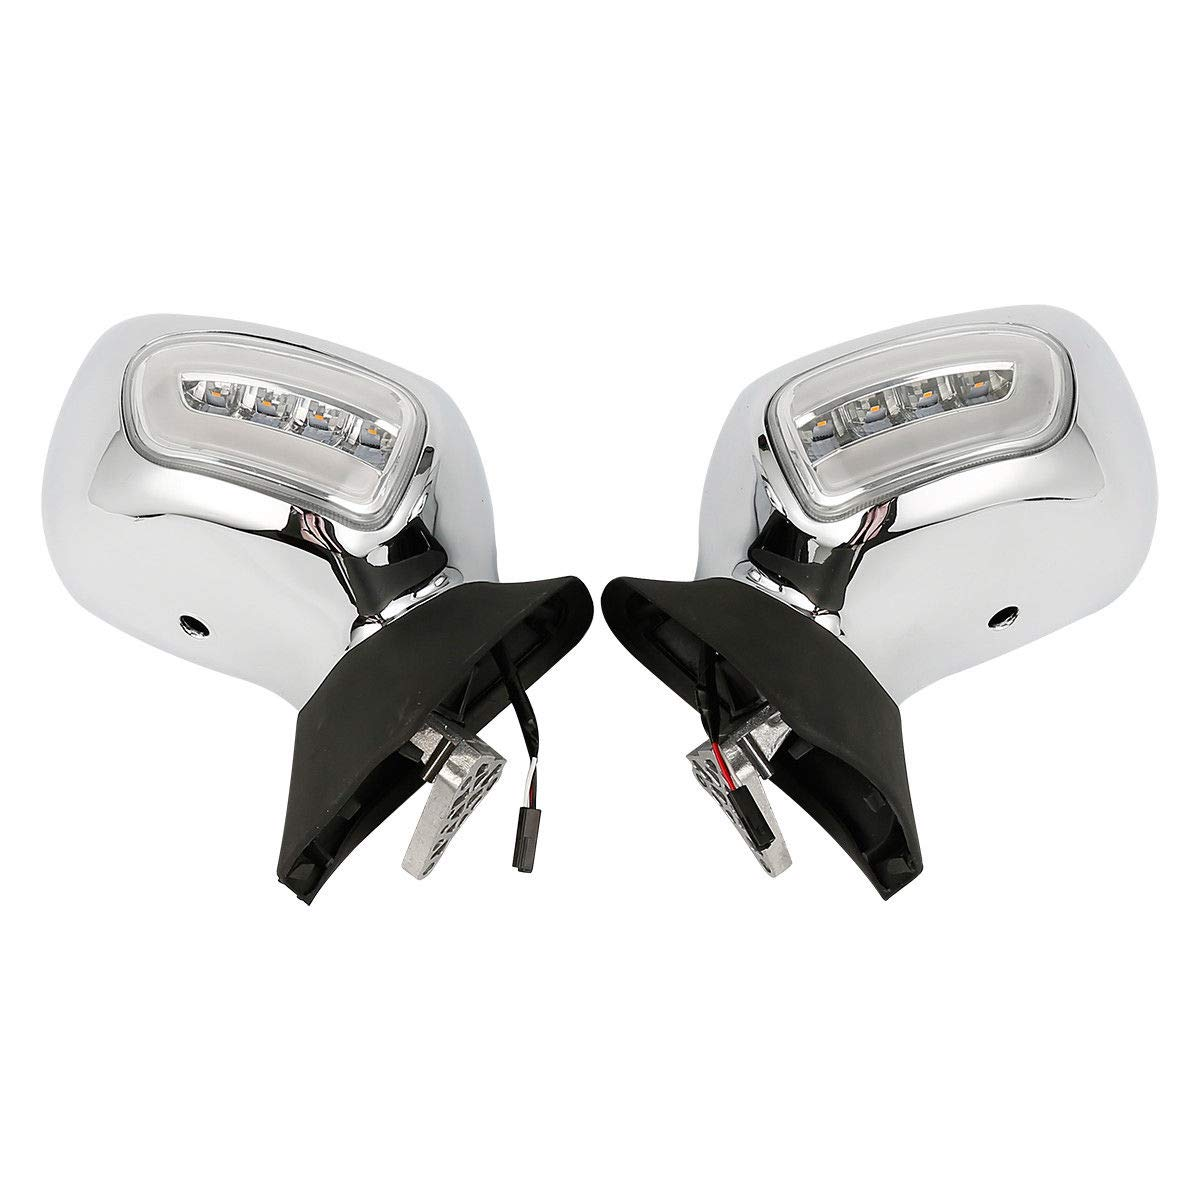 Rearview Mirrors + Orange/Clear Lens LED Turn Signals For Honda GL1800 F6B 13-17 (Chrome + Clear)